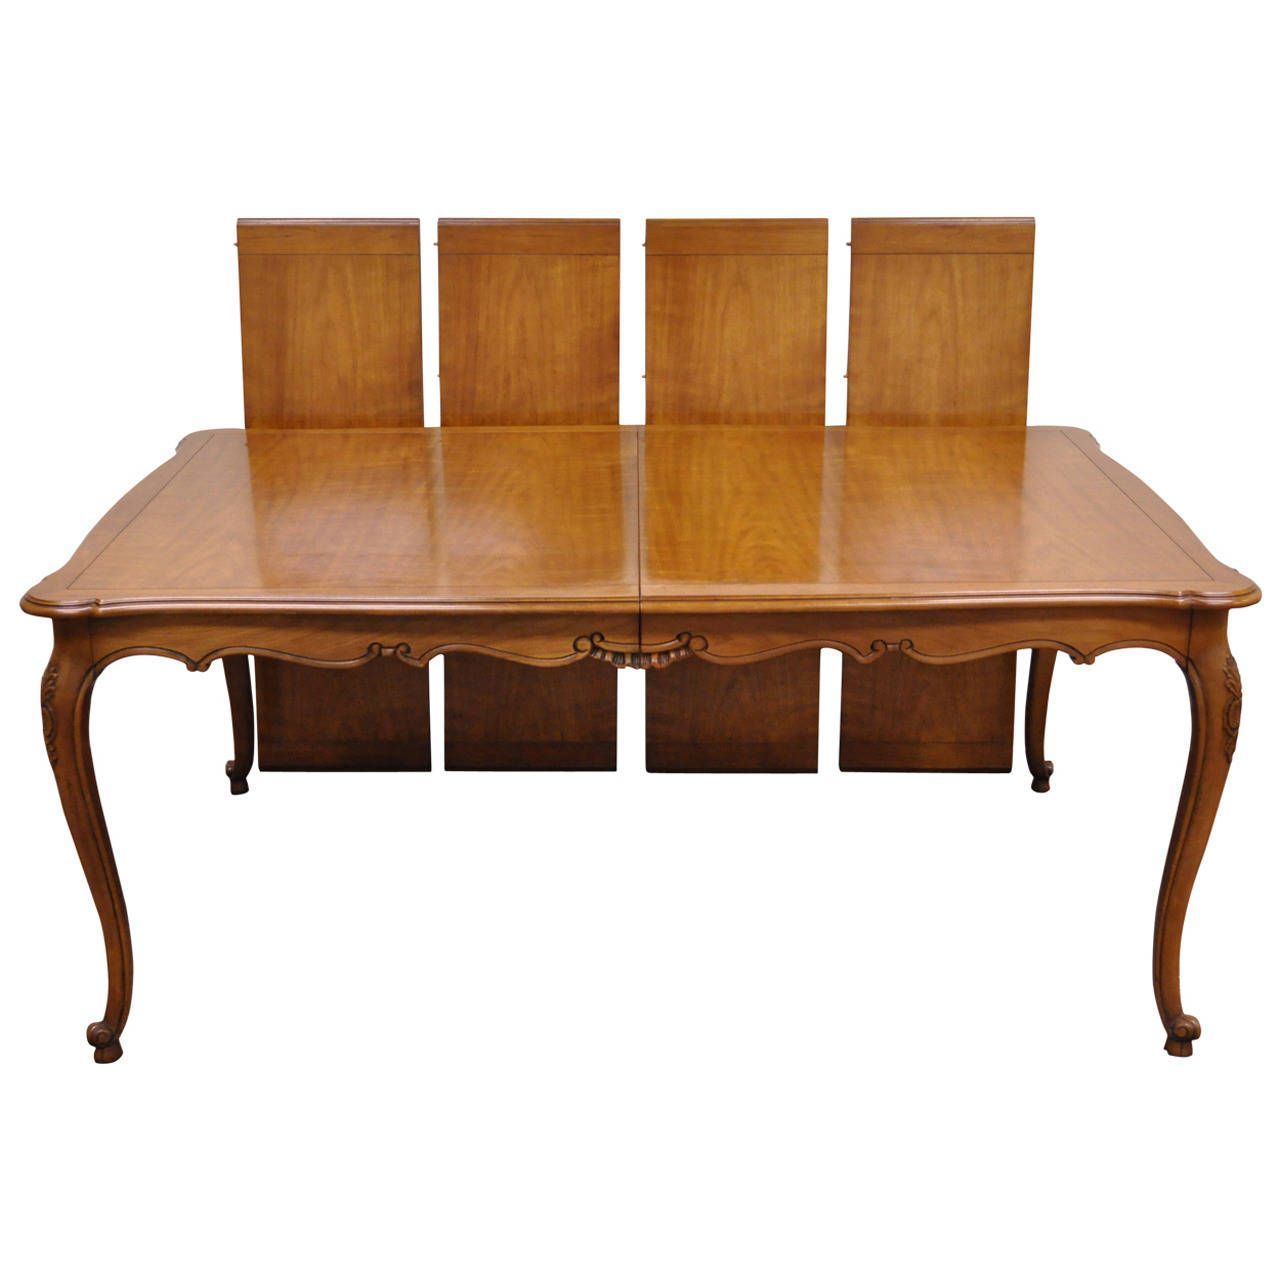 Kindel Borghese French Country or Louis XV Style Dining Table with ...